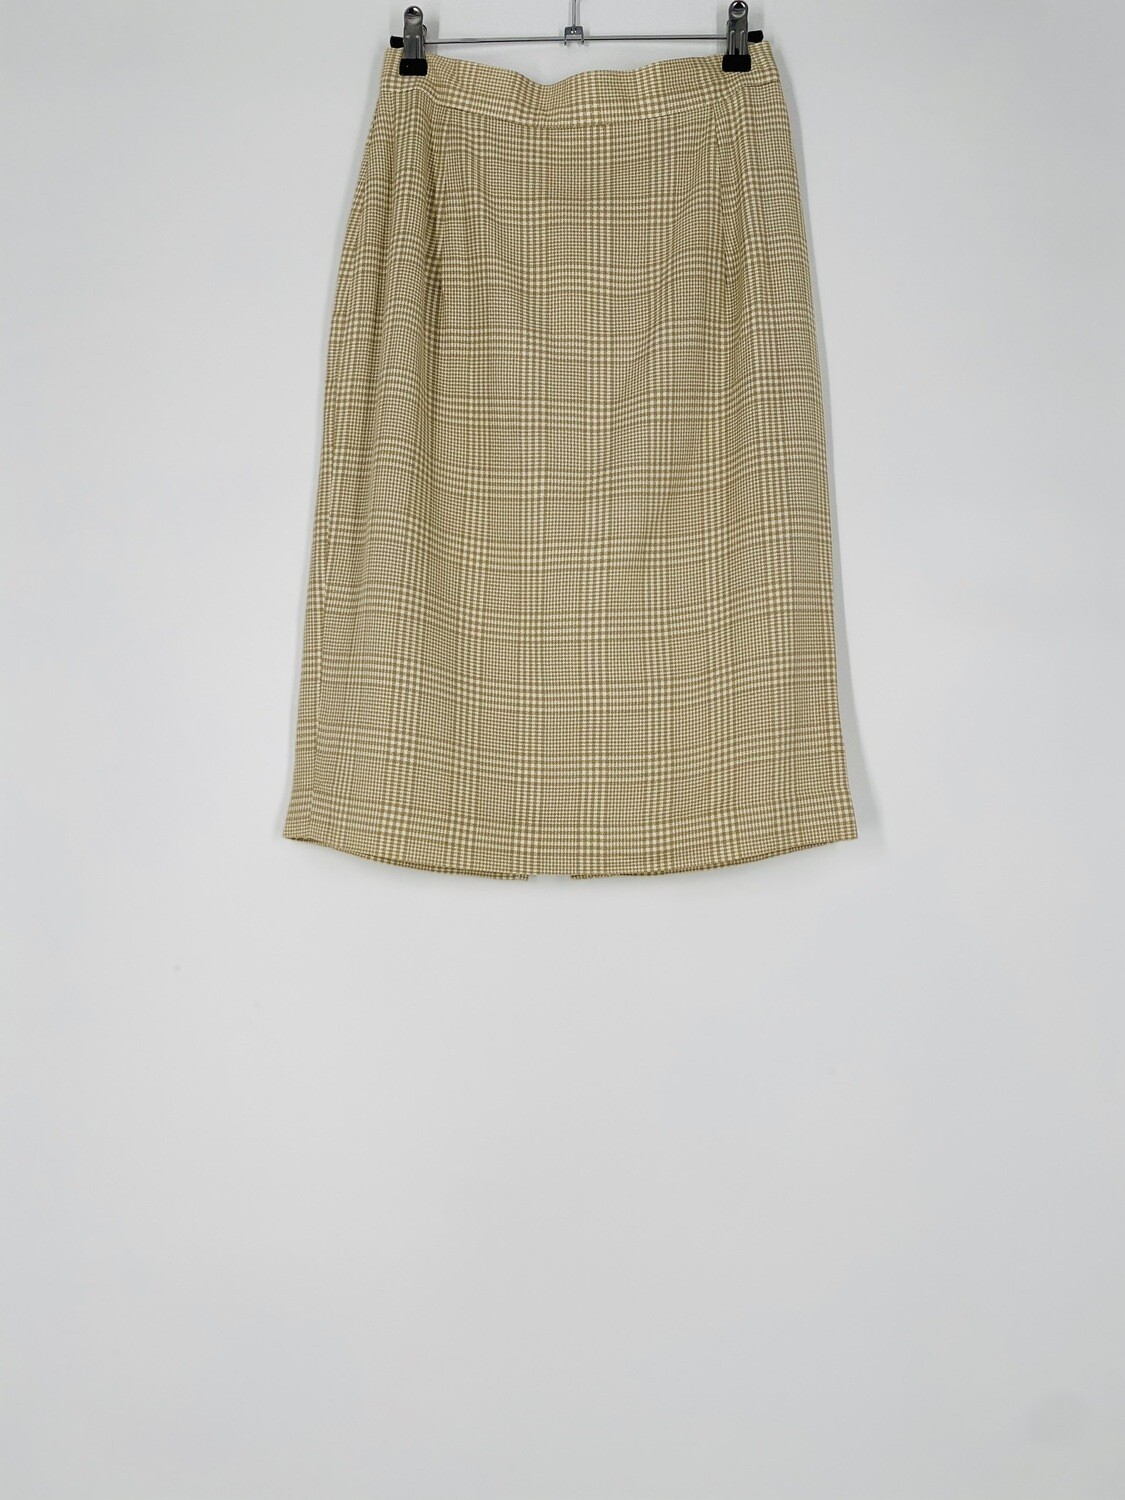 David N Plaid Skirt Size S